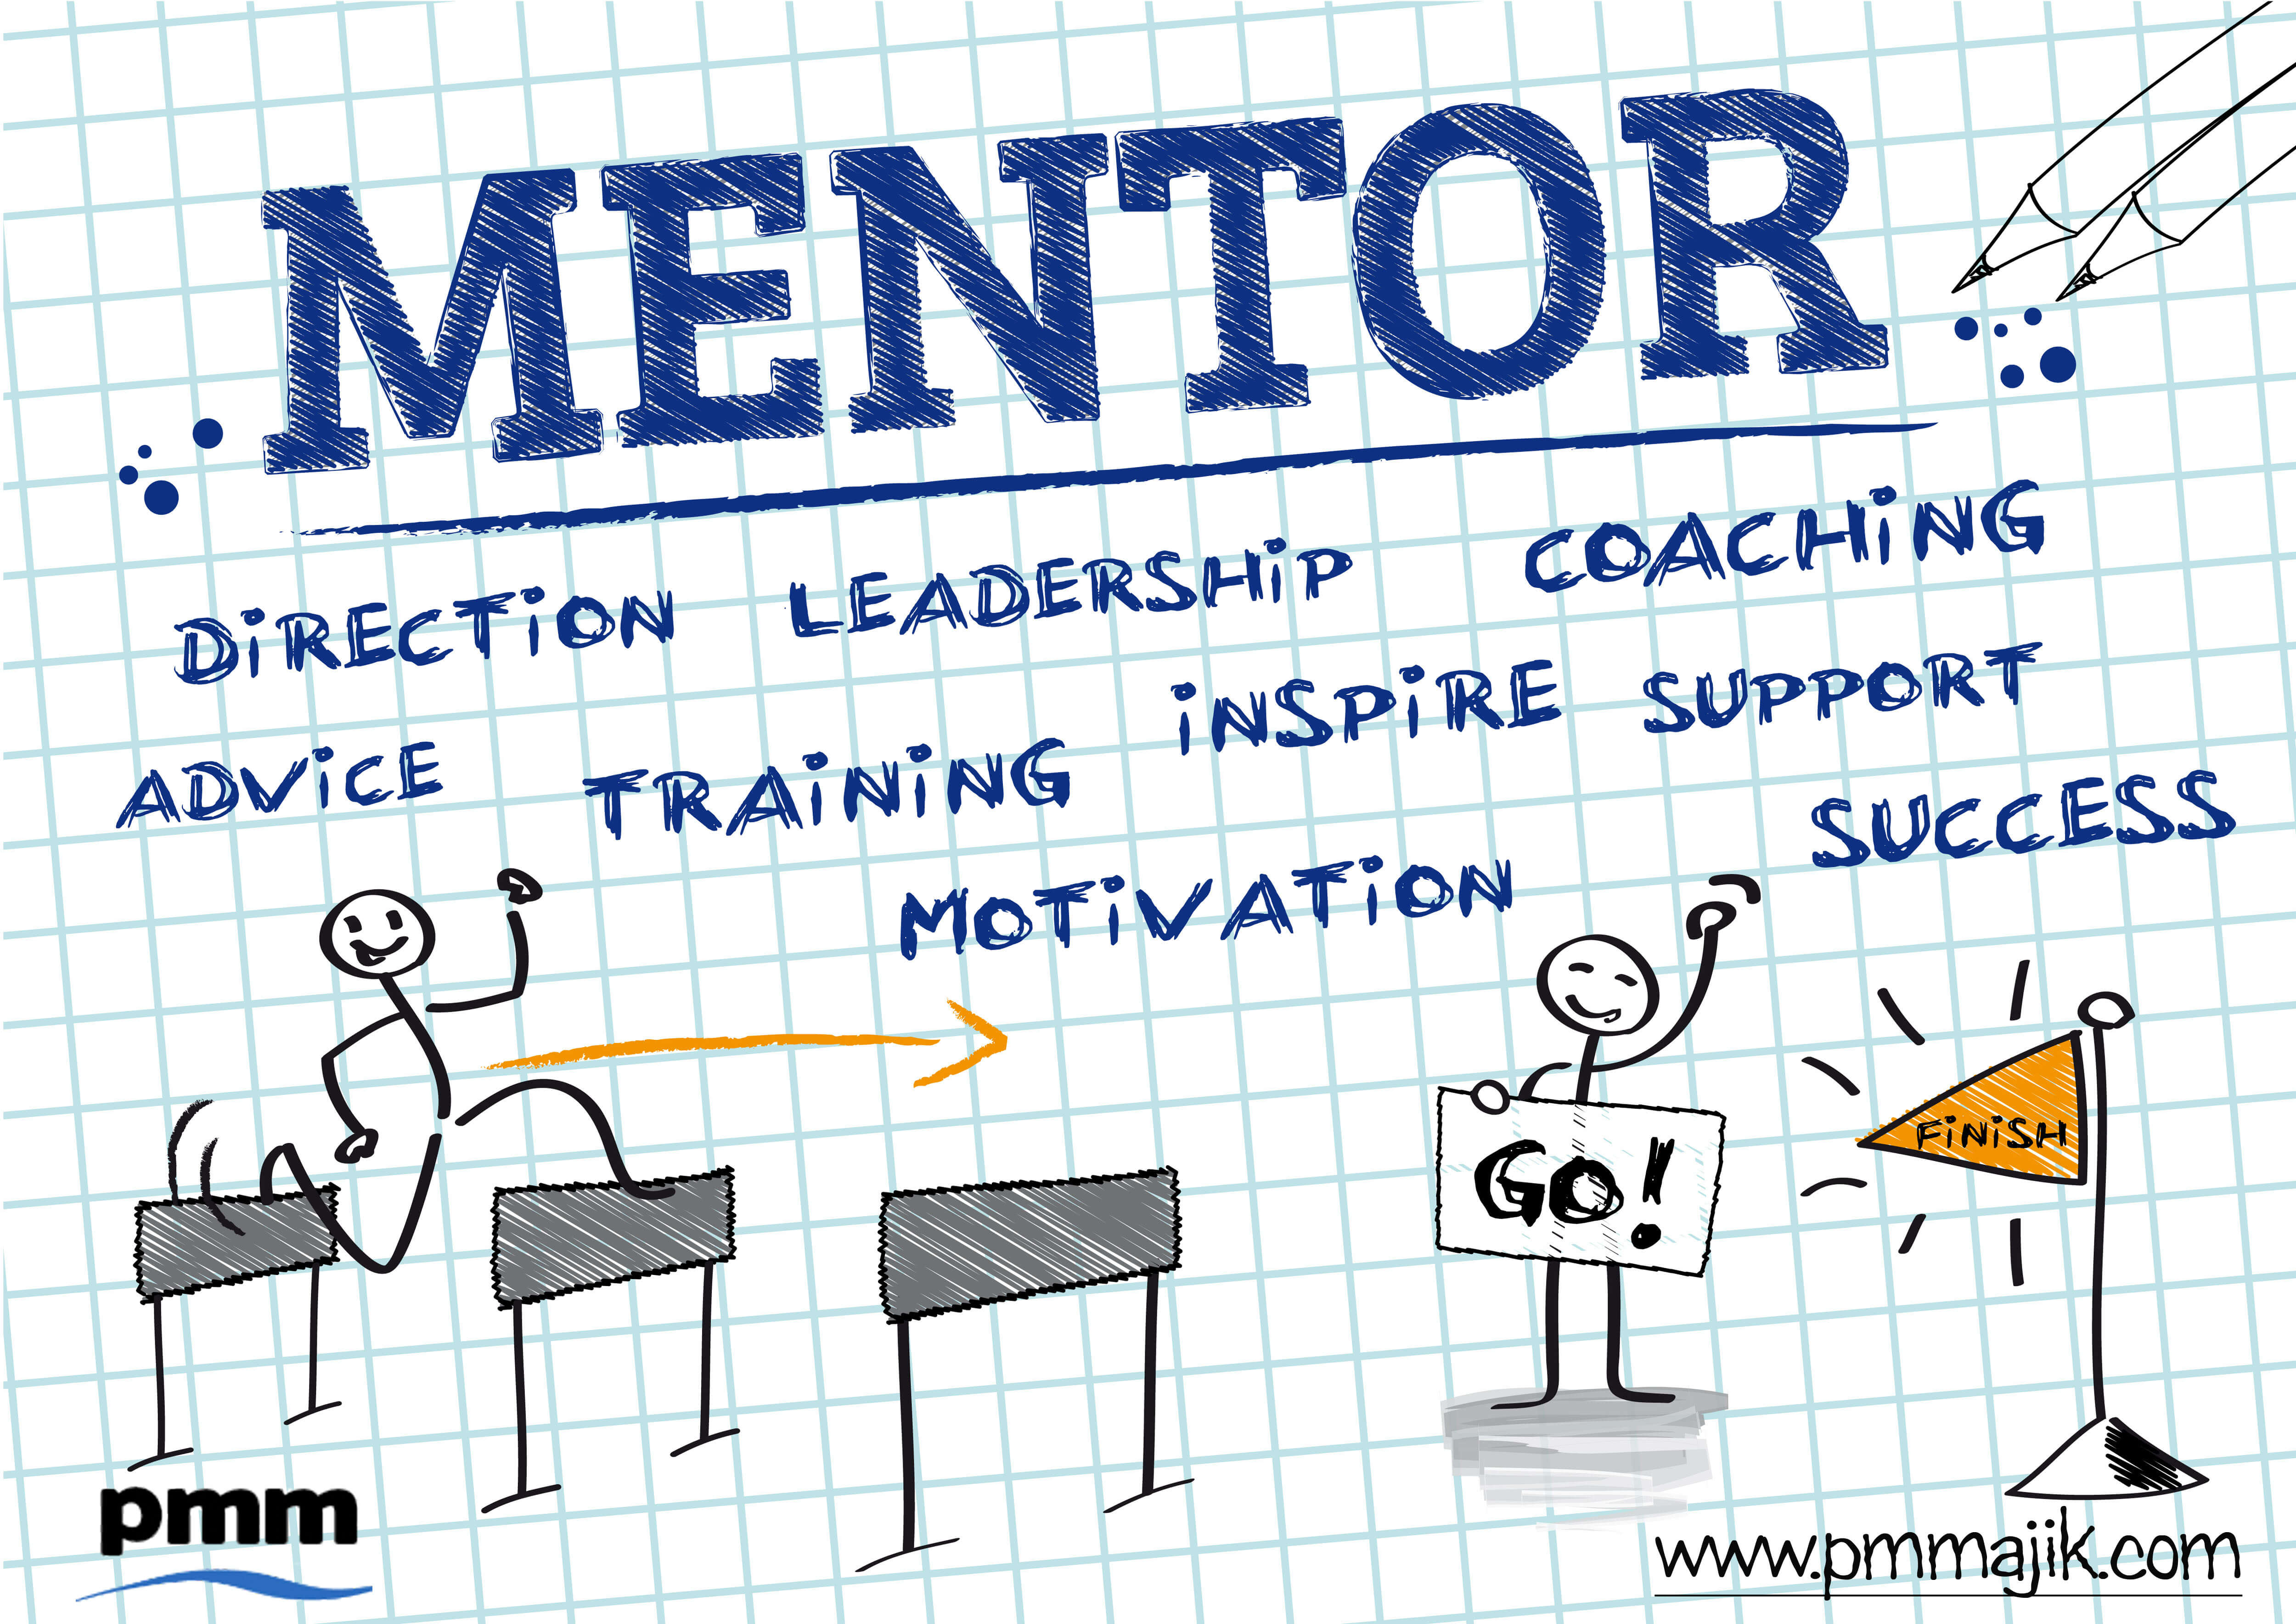 Important to mentor project team members